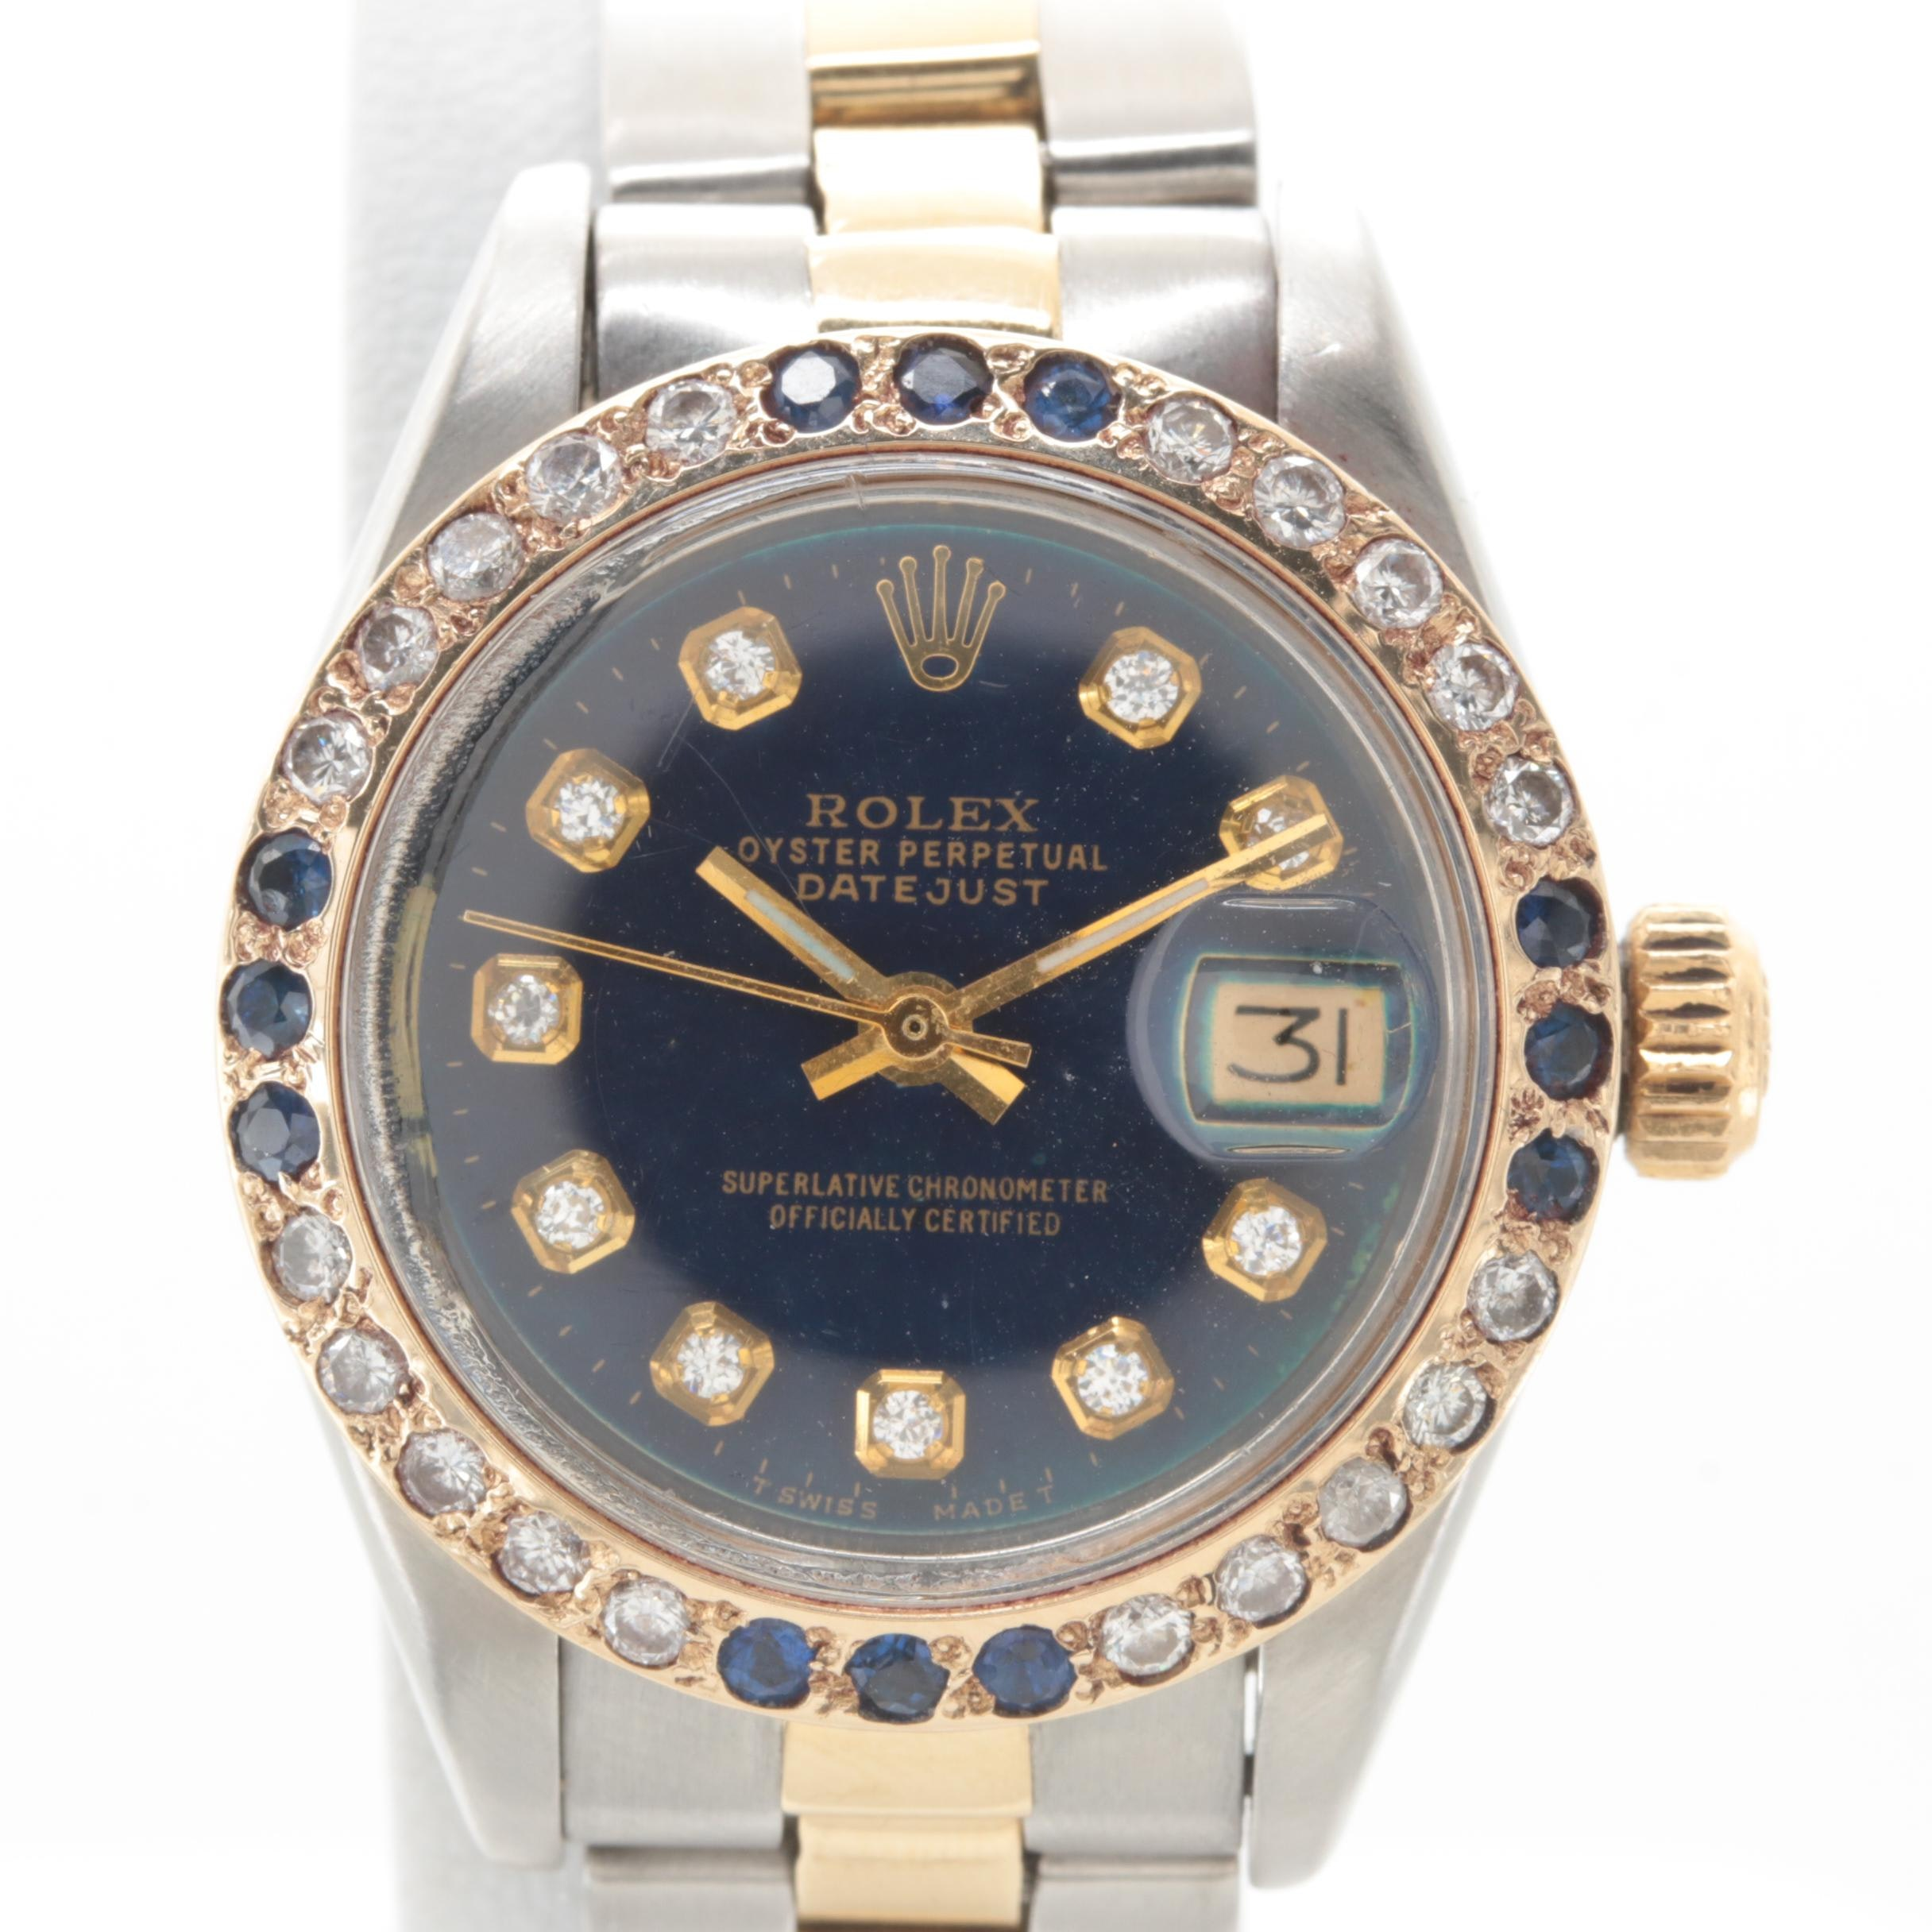 Rolex Stainless Steel and 18K Yellow Gold Diamond and Sapphire Wristwatch